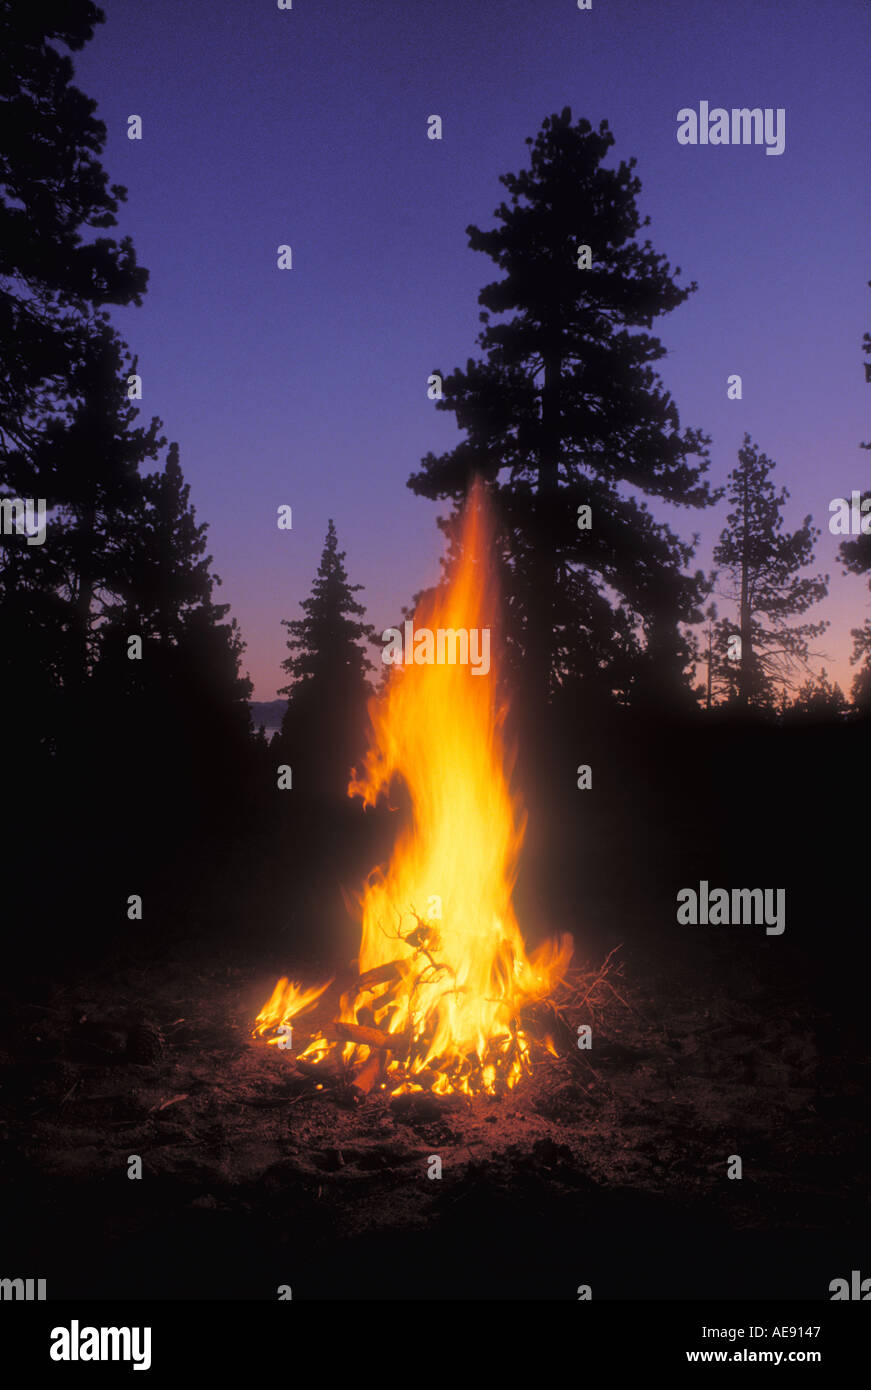 Evening fire surrounded by pine trees in forest - Stock Image